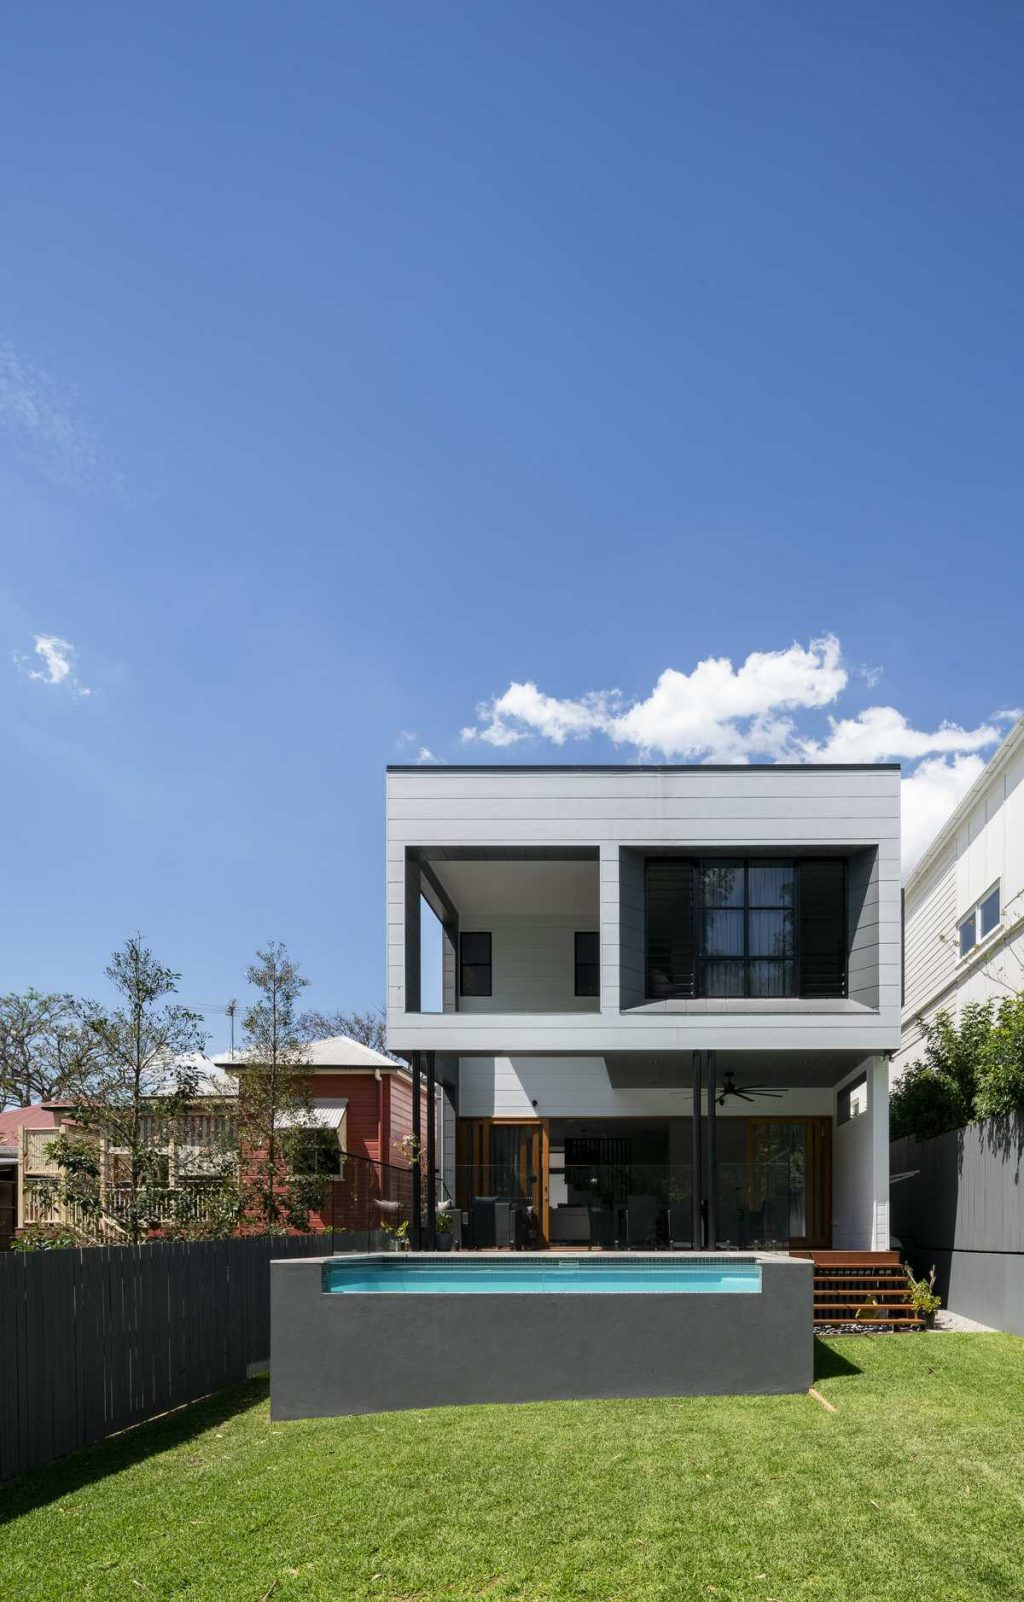 Small workers cottage renovation in Paddington by Studio 15b